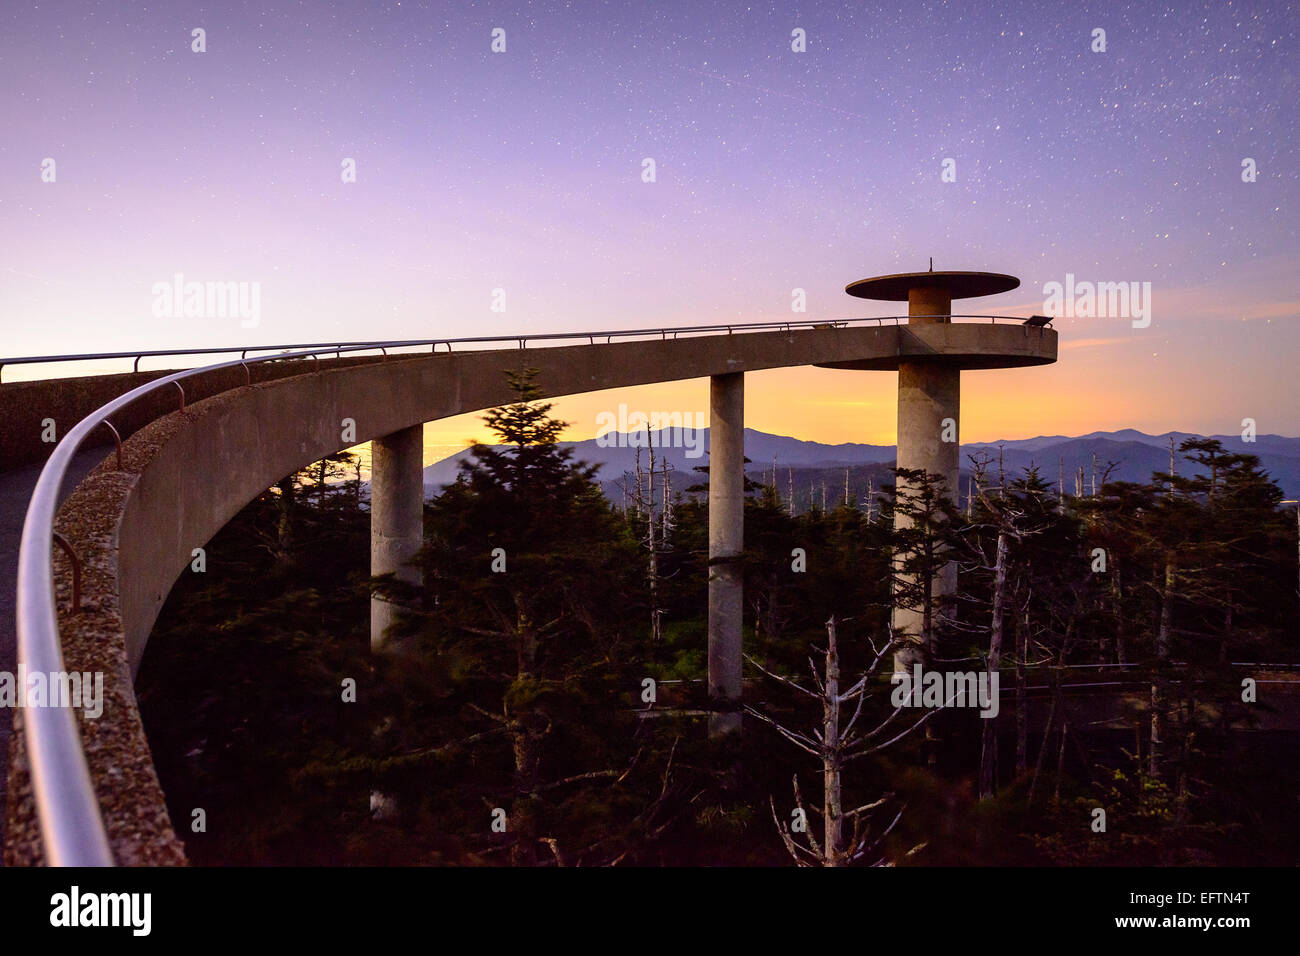 Clingman's Dome in the Great Smoky Mountains of Tennessee. - Stock Image